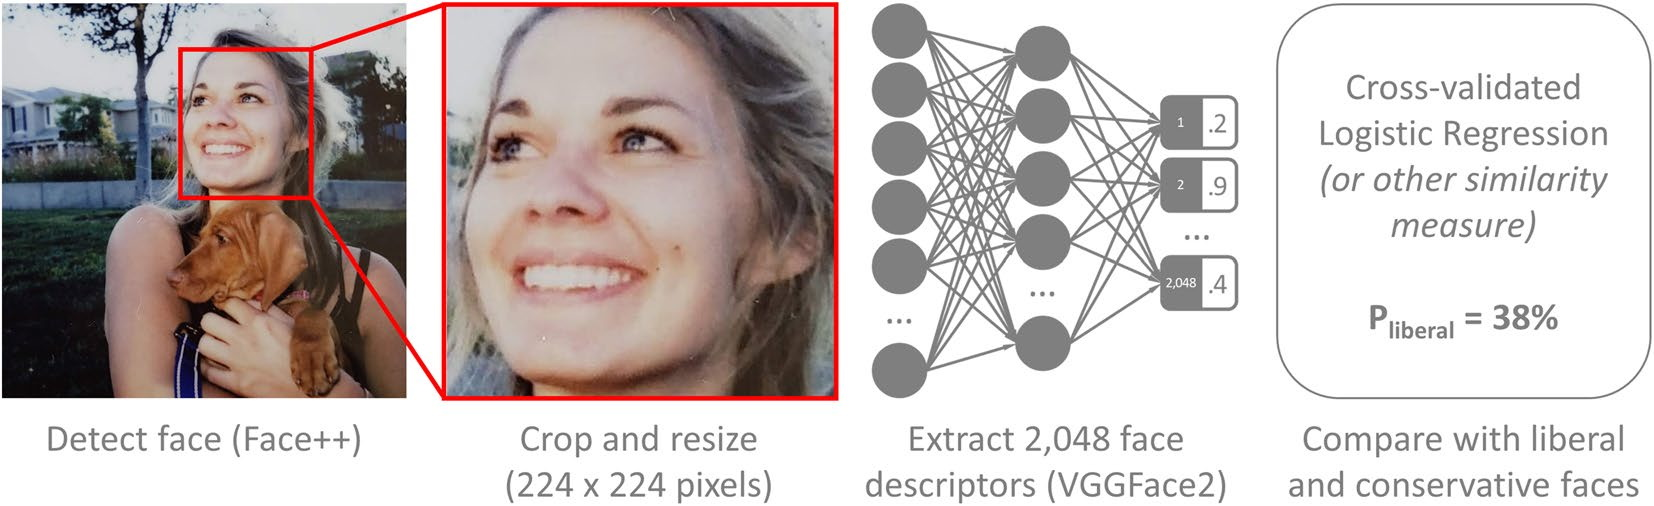 Chart showing how faces are cropped and reduced to neural network representations.